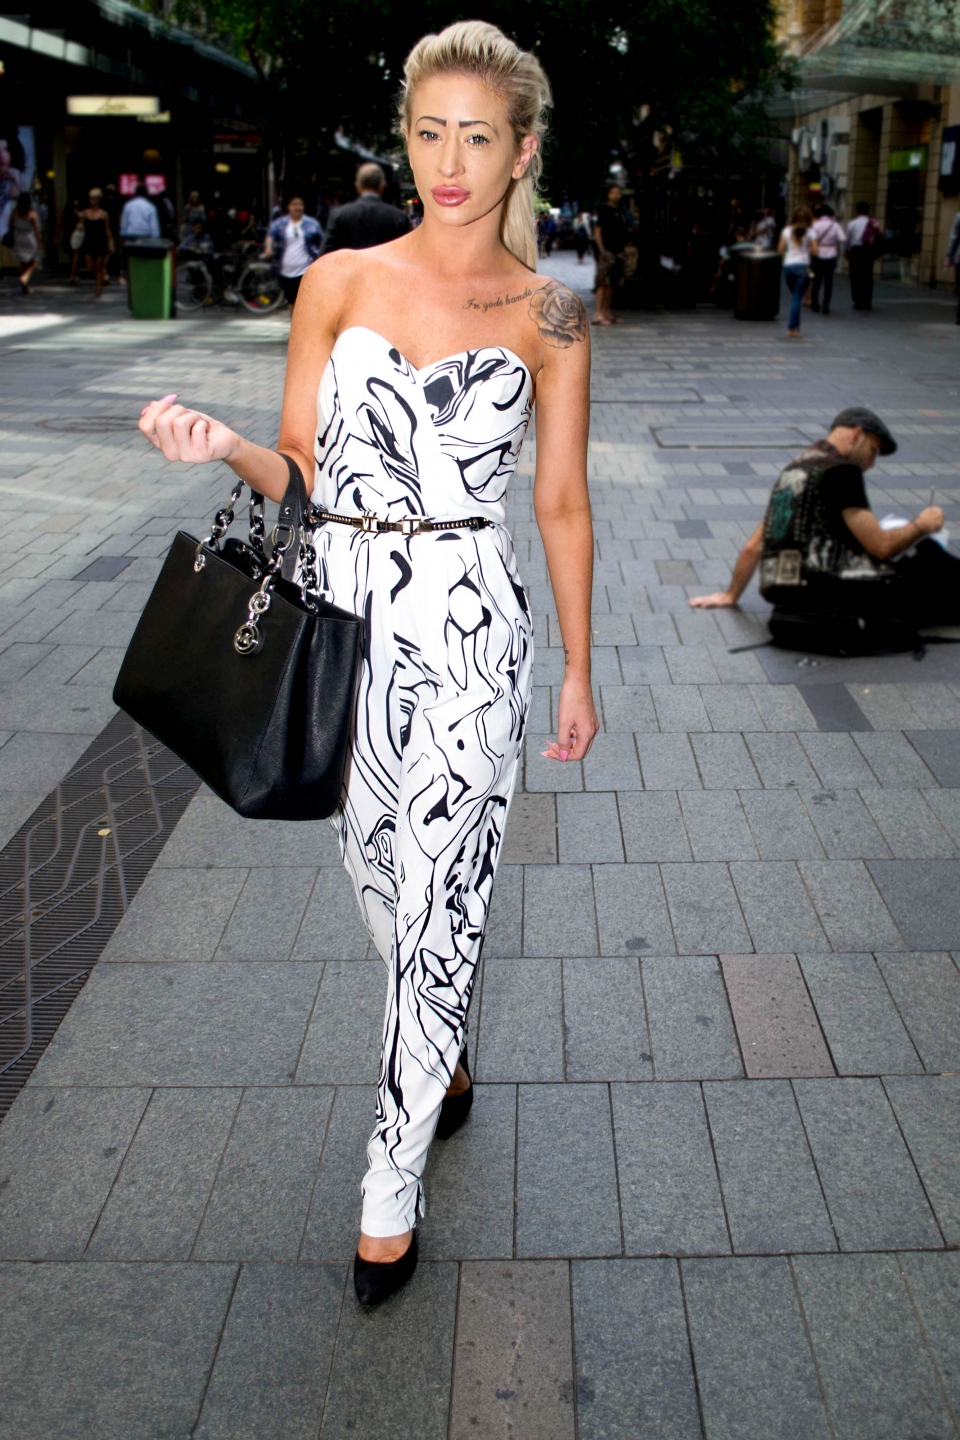 NSW: Ashleigh Candela, manager, snapped in Pitt St Sydney by Alice Sciberras.